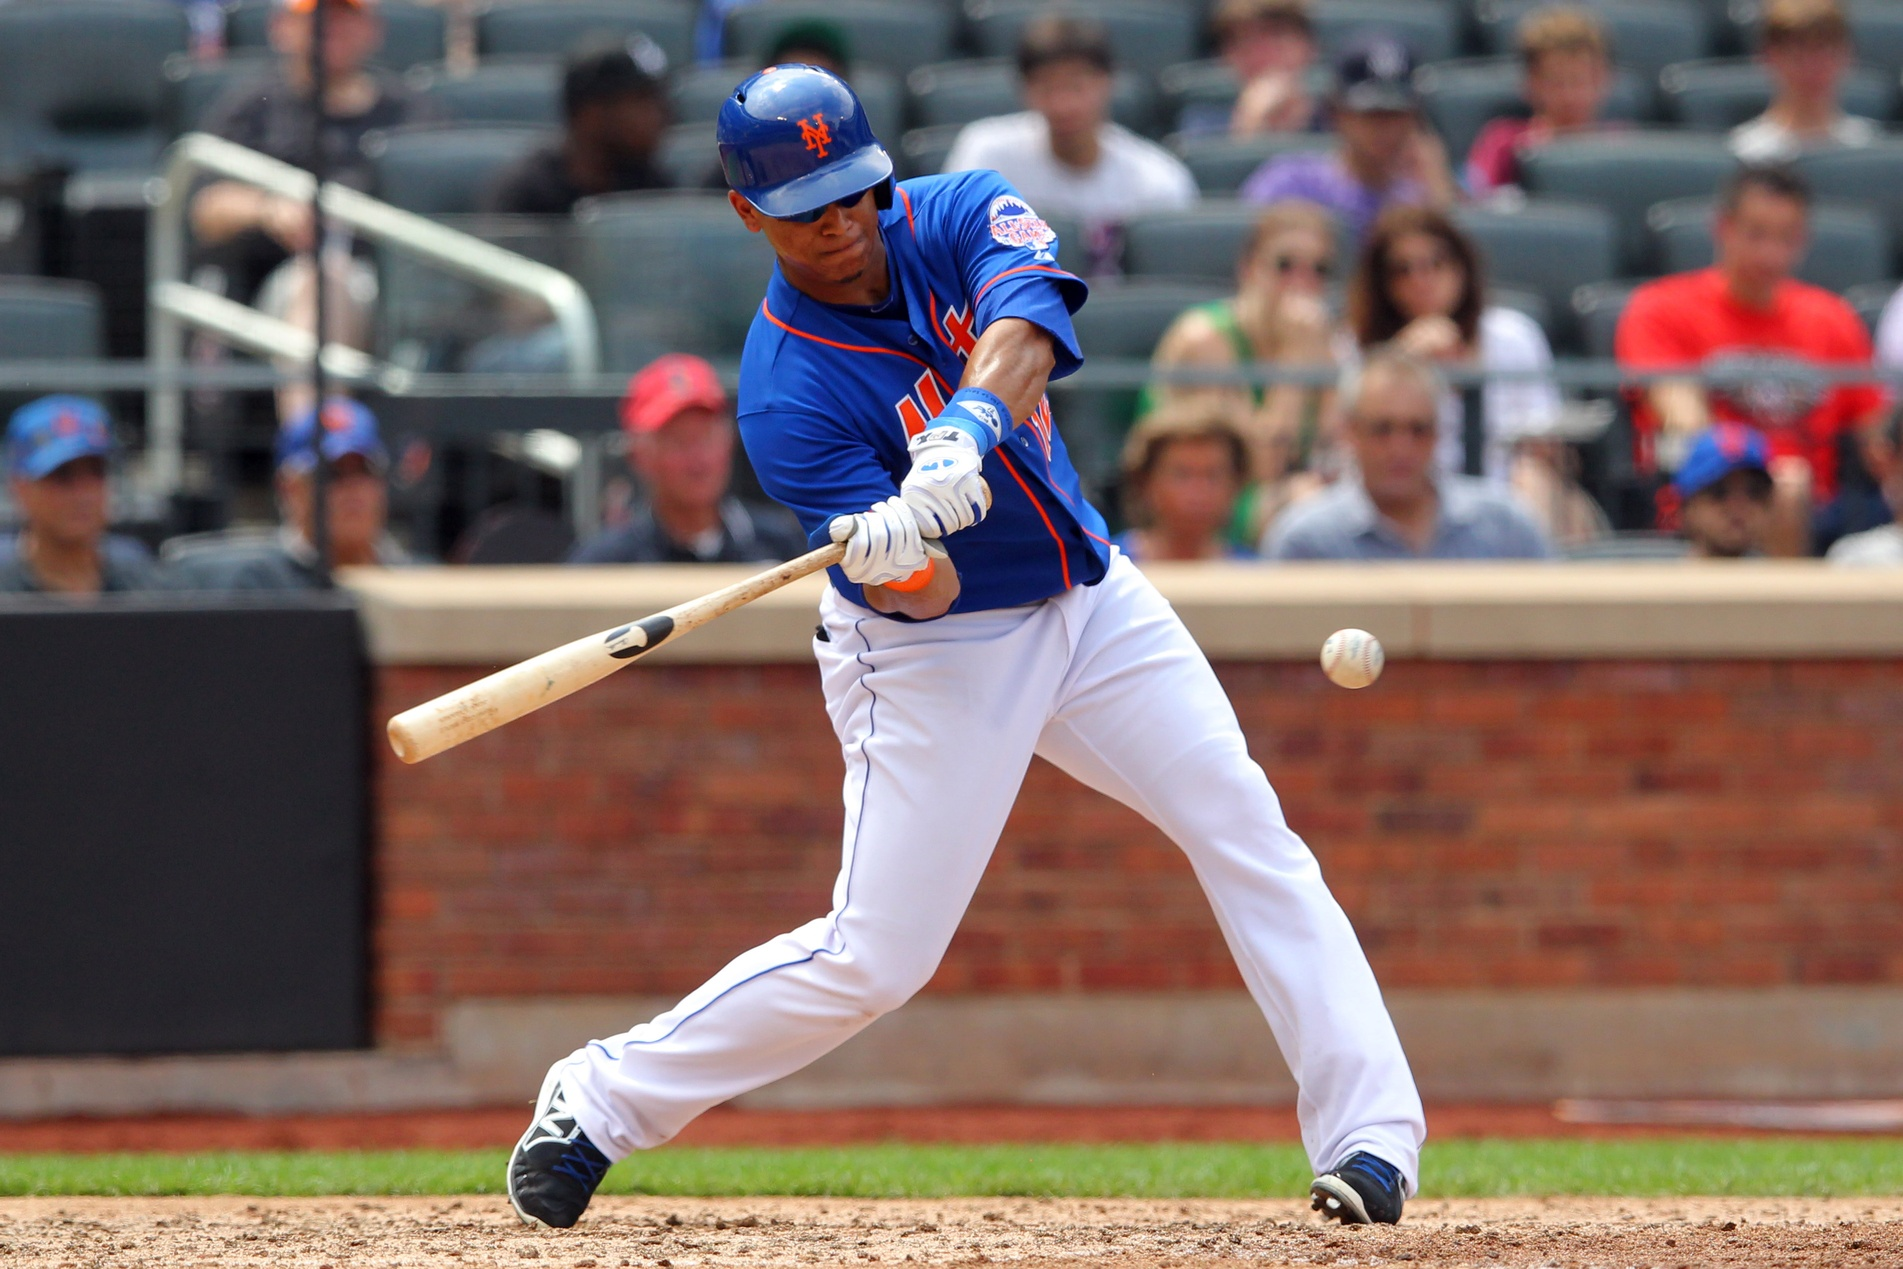 Ojeda Tabs Lagares As His Breakthrough Player for 2014